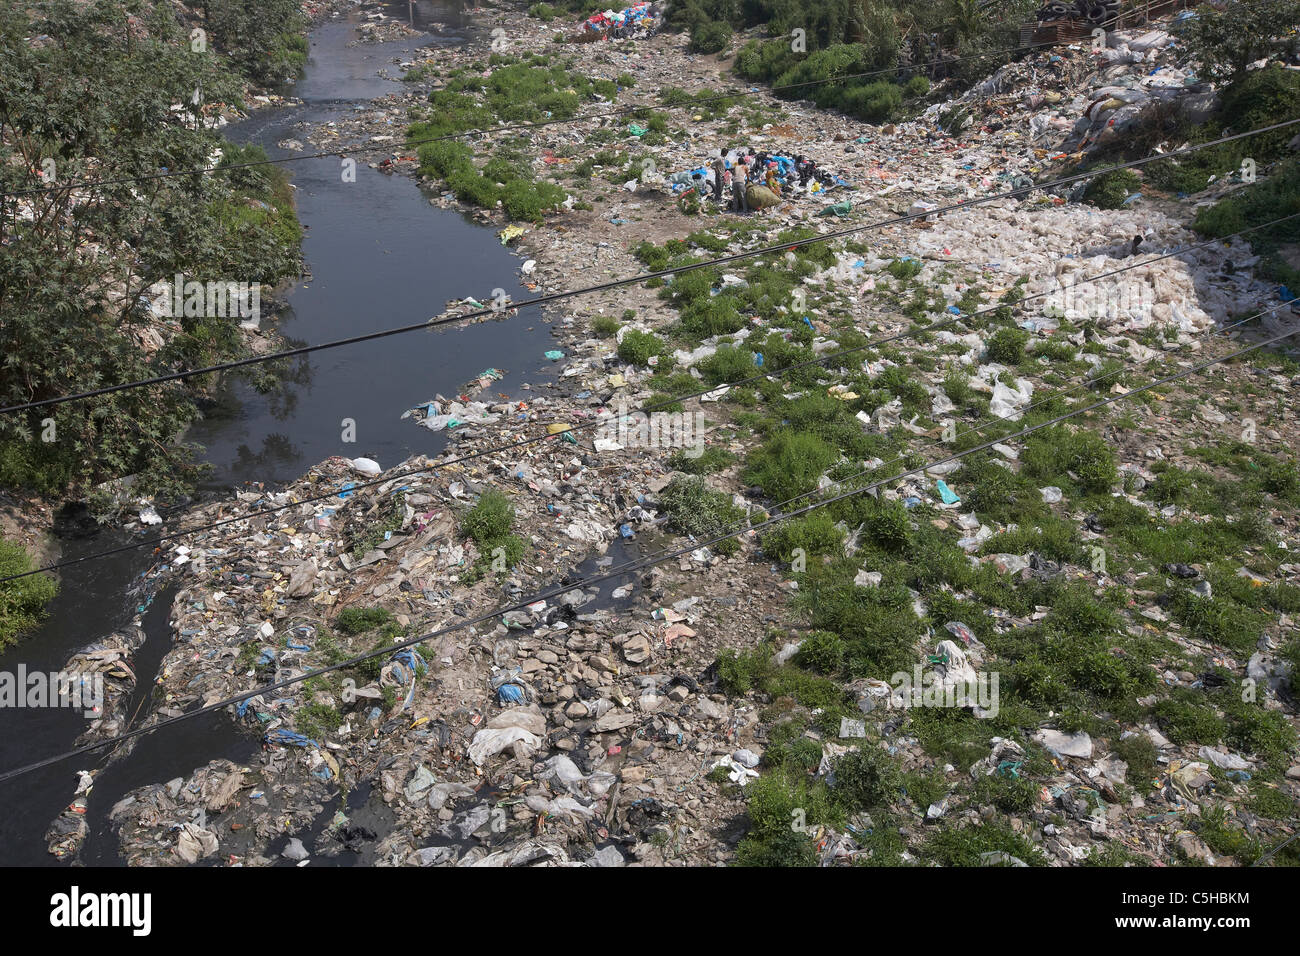 The polluted and stagnant Vishnumati River, Kathmandu, Nepal, Asia - Stock Image